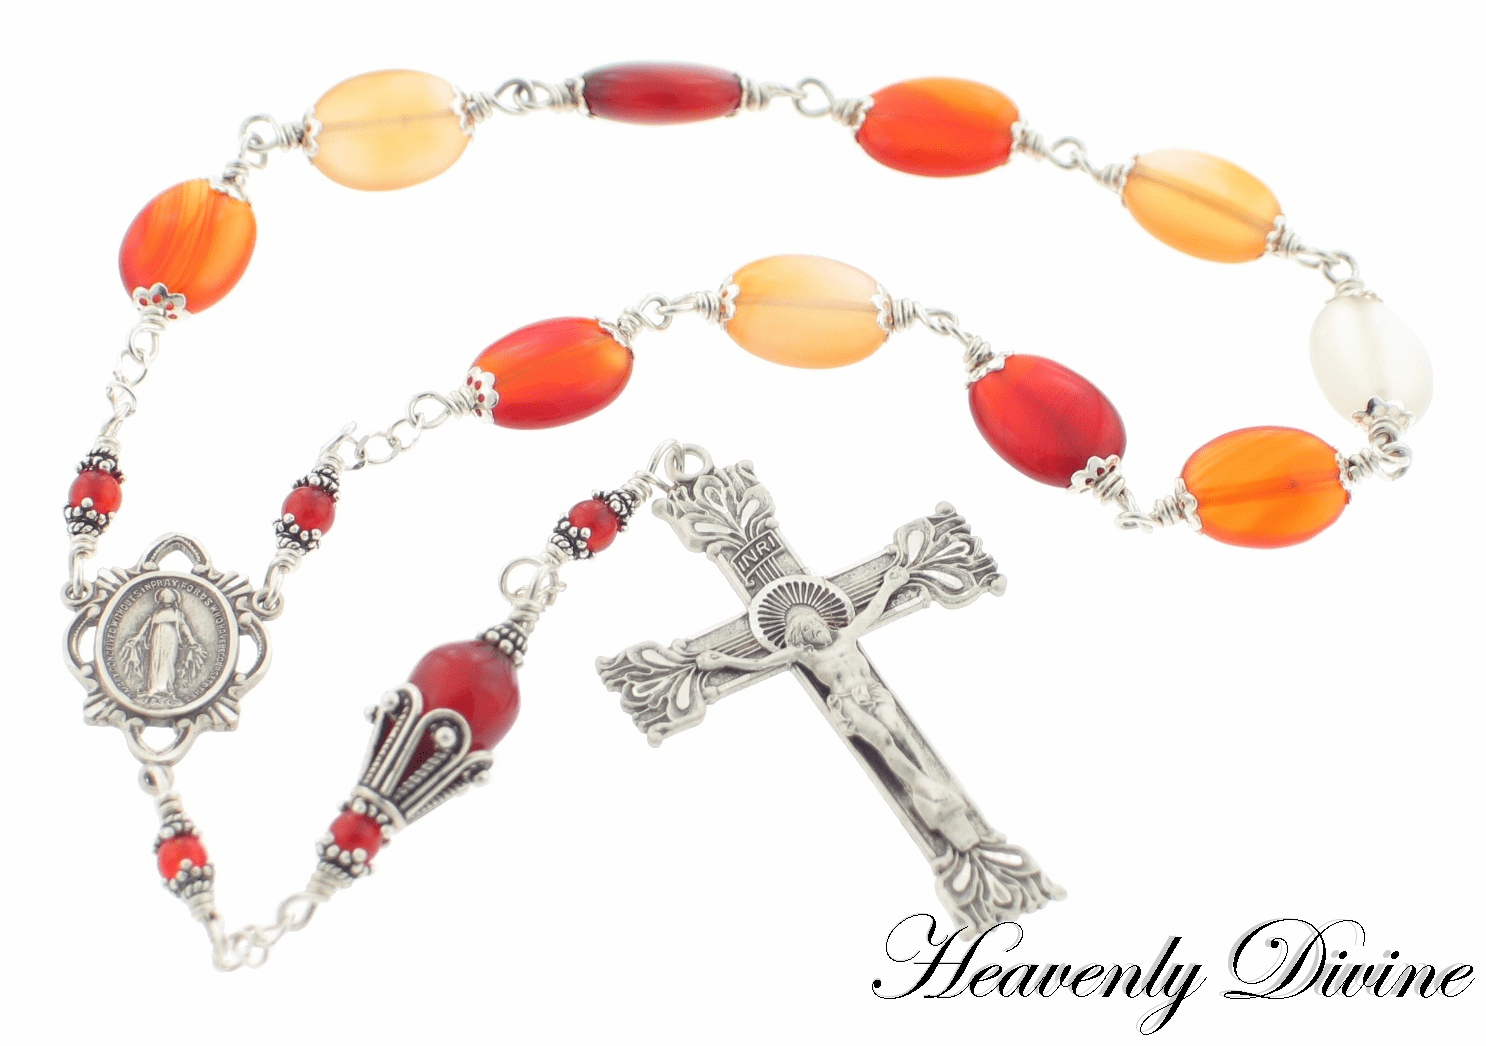 Handmade Agate & Sterling Silver Pocket Rosary by Heavenly Divine